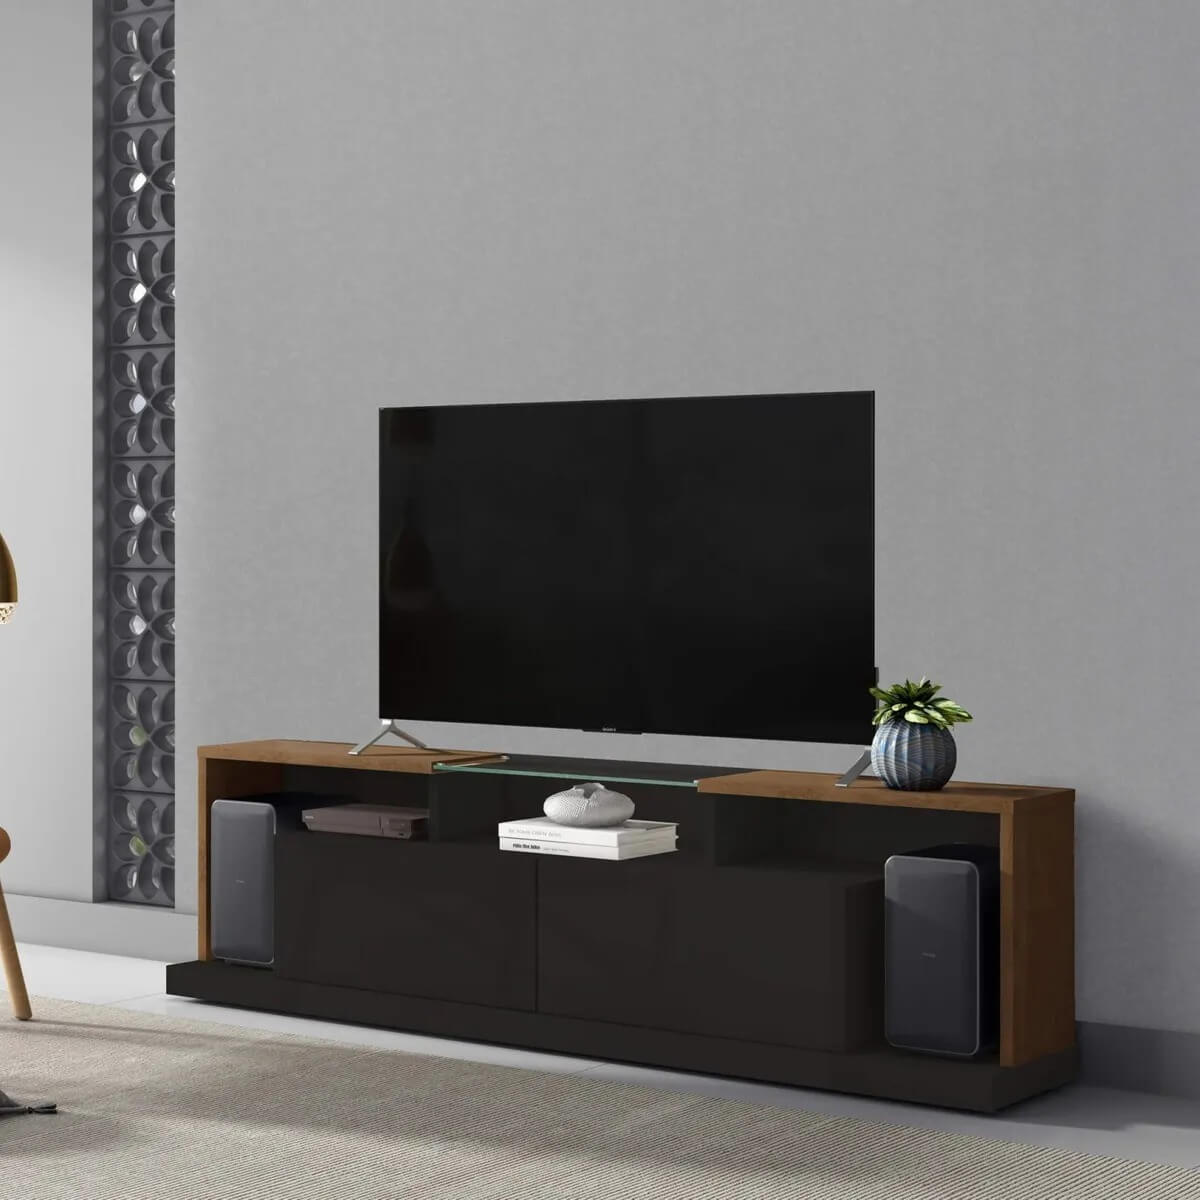 rafael-brown-tv-stand-product-image